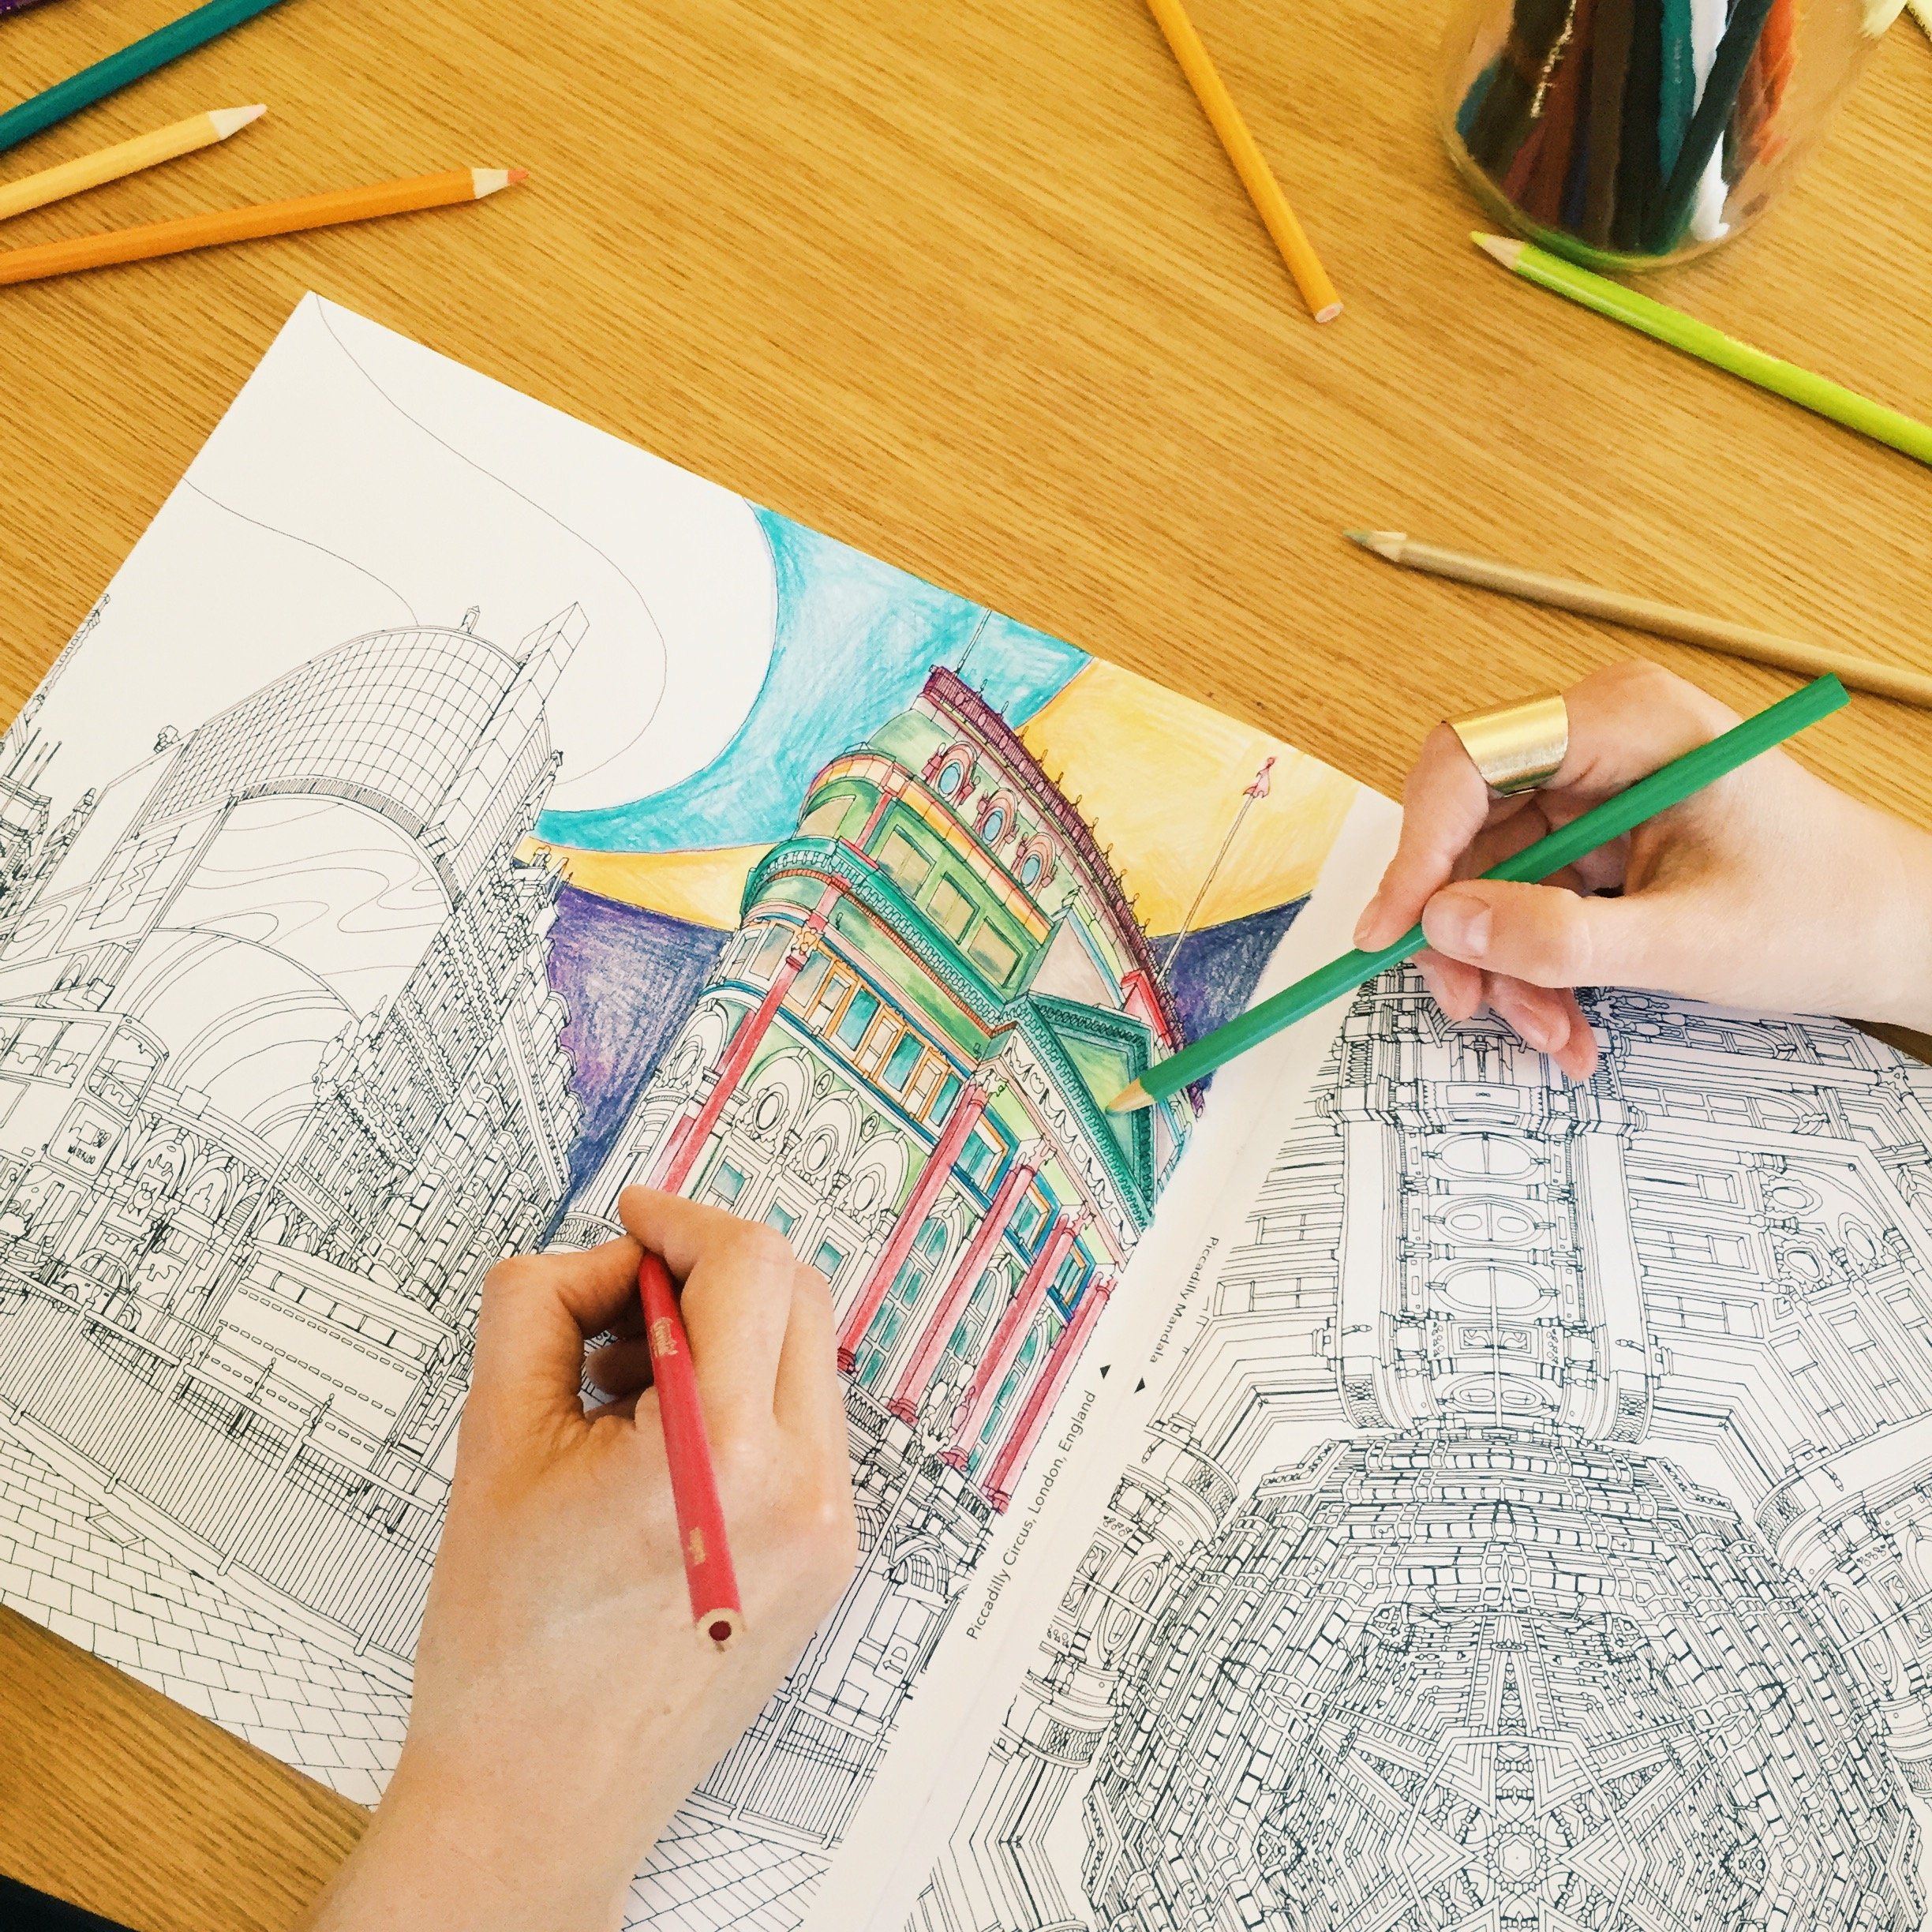 Colouring books for adults melbourne - Buy Fantastic Cities A Coloring Book Of Amazing Places Real And Imagined Book Online At Low Prices In India Fantastic Cities A Coloring Book Of Amazing